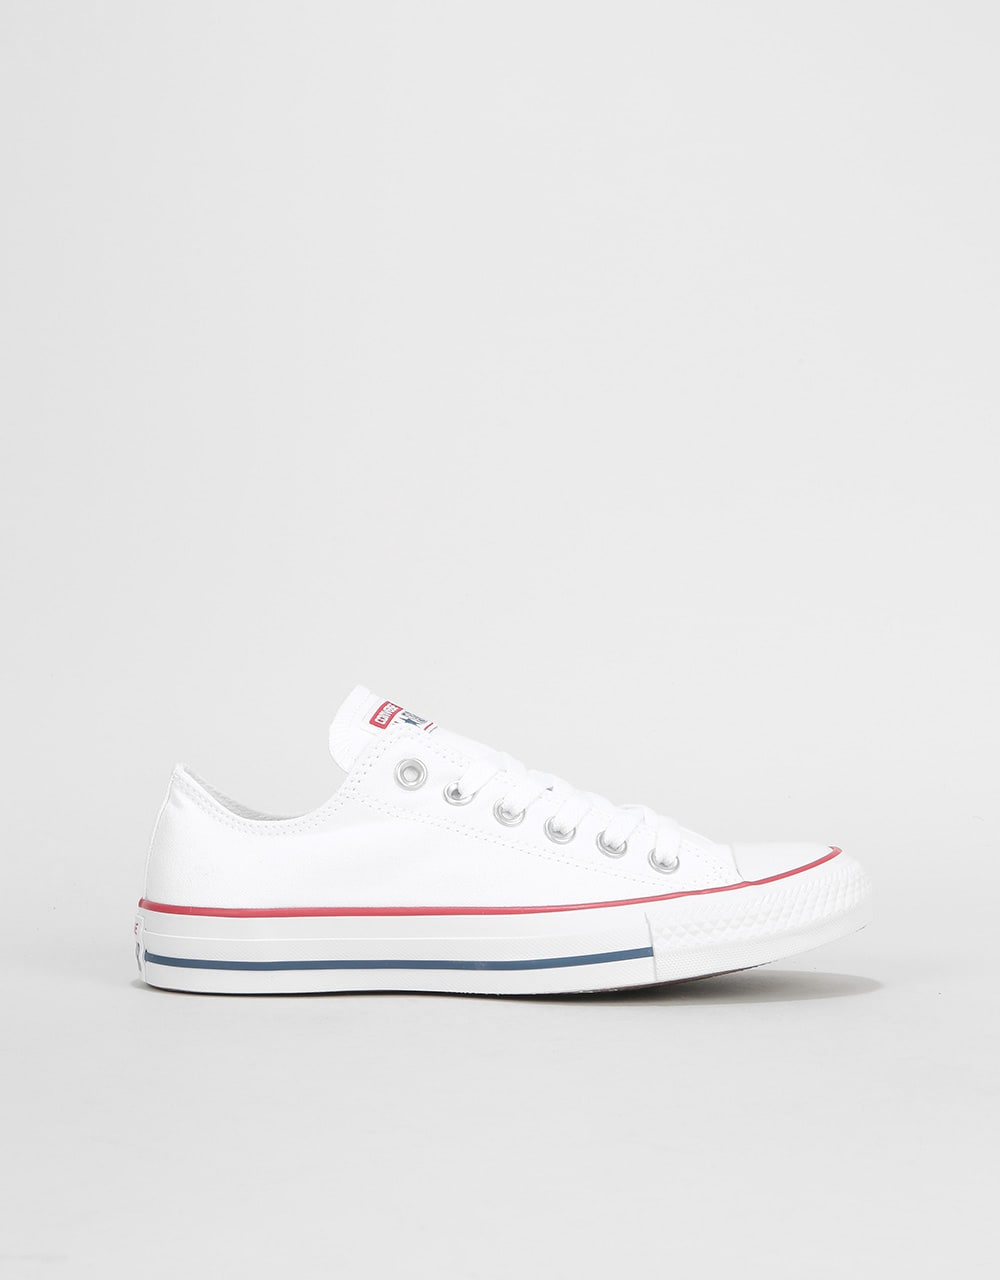 23739d6b92e0 Converse All Star Low Womens Trainers - Optical White